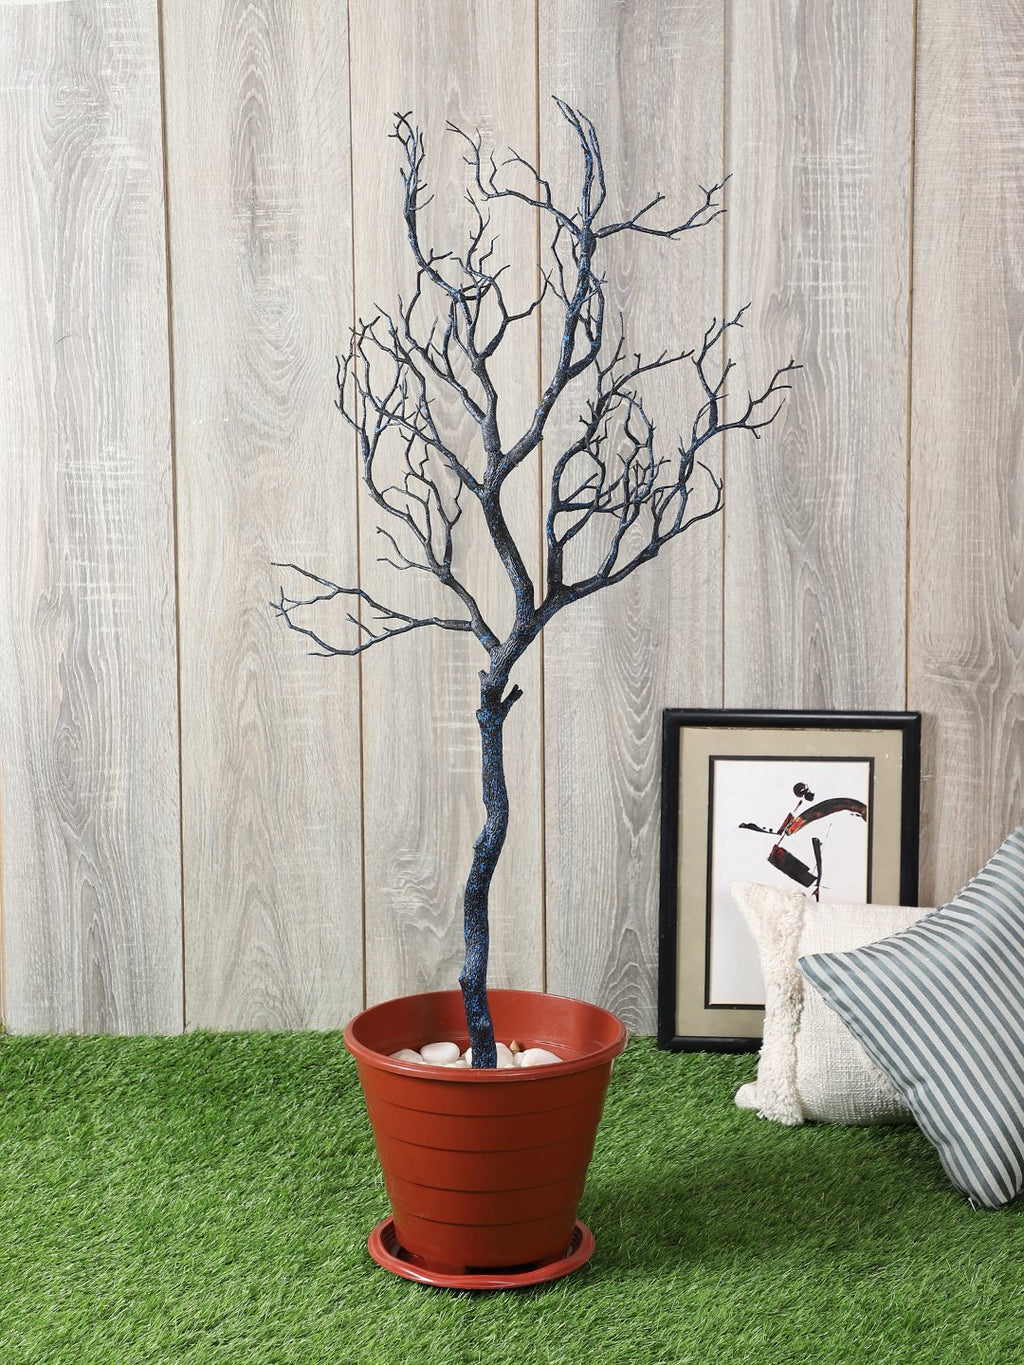 Artificial Plant Without Pot For Home Garden Decoration